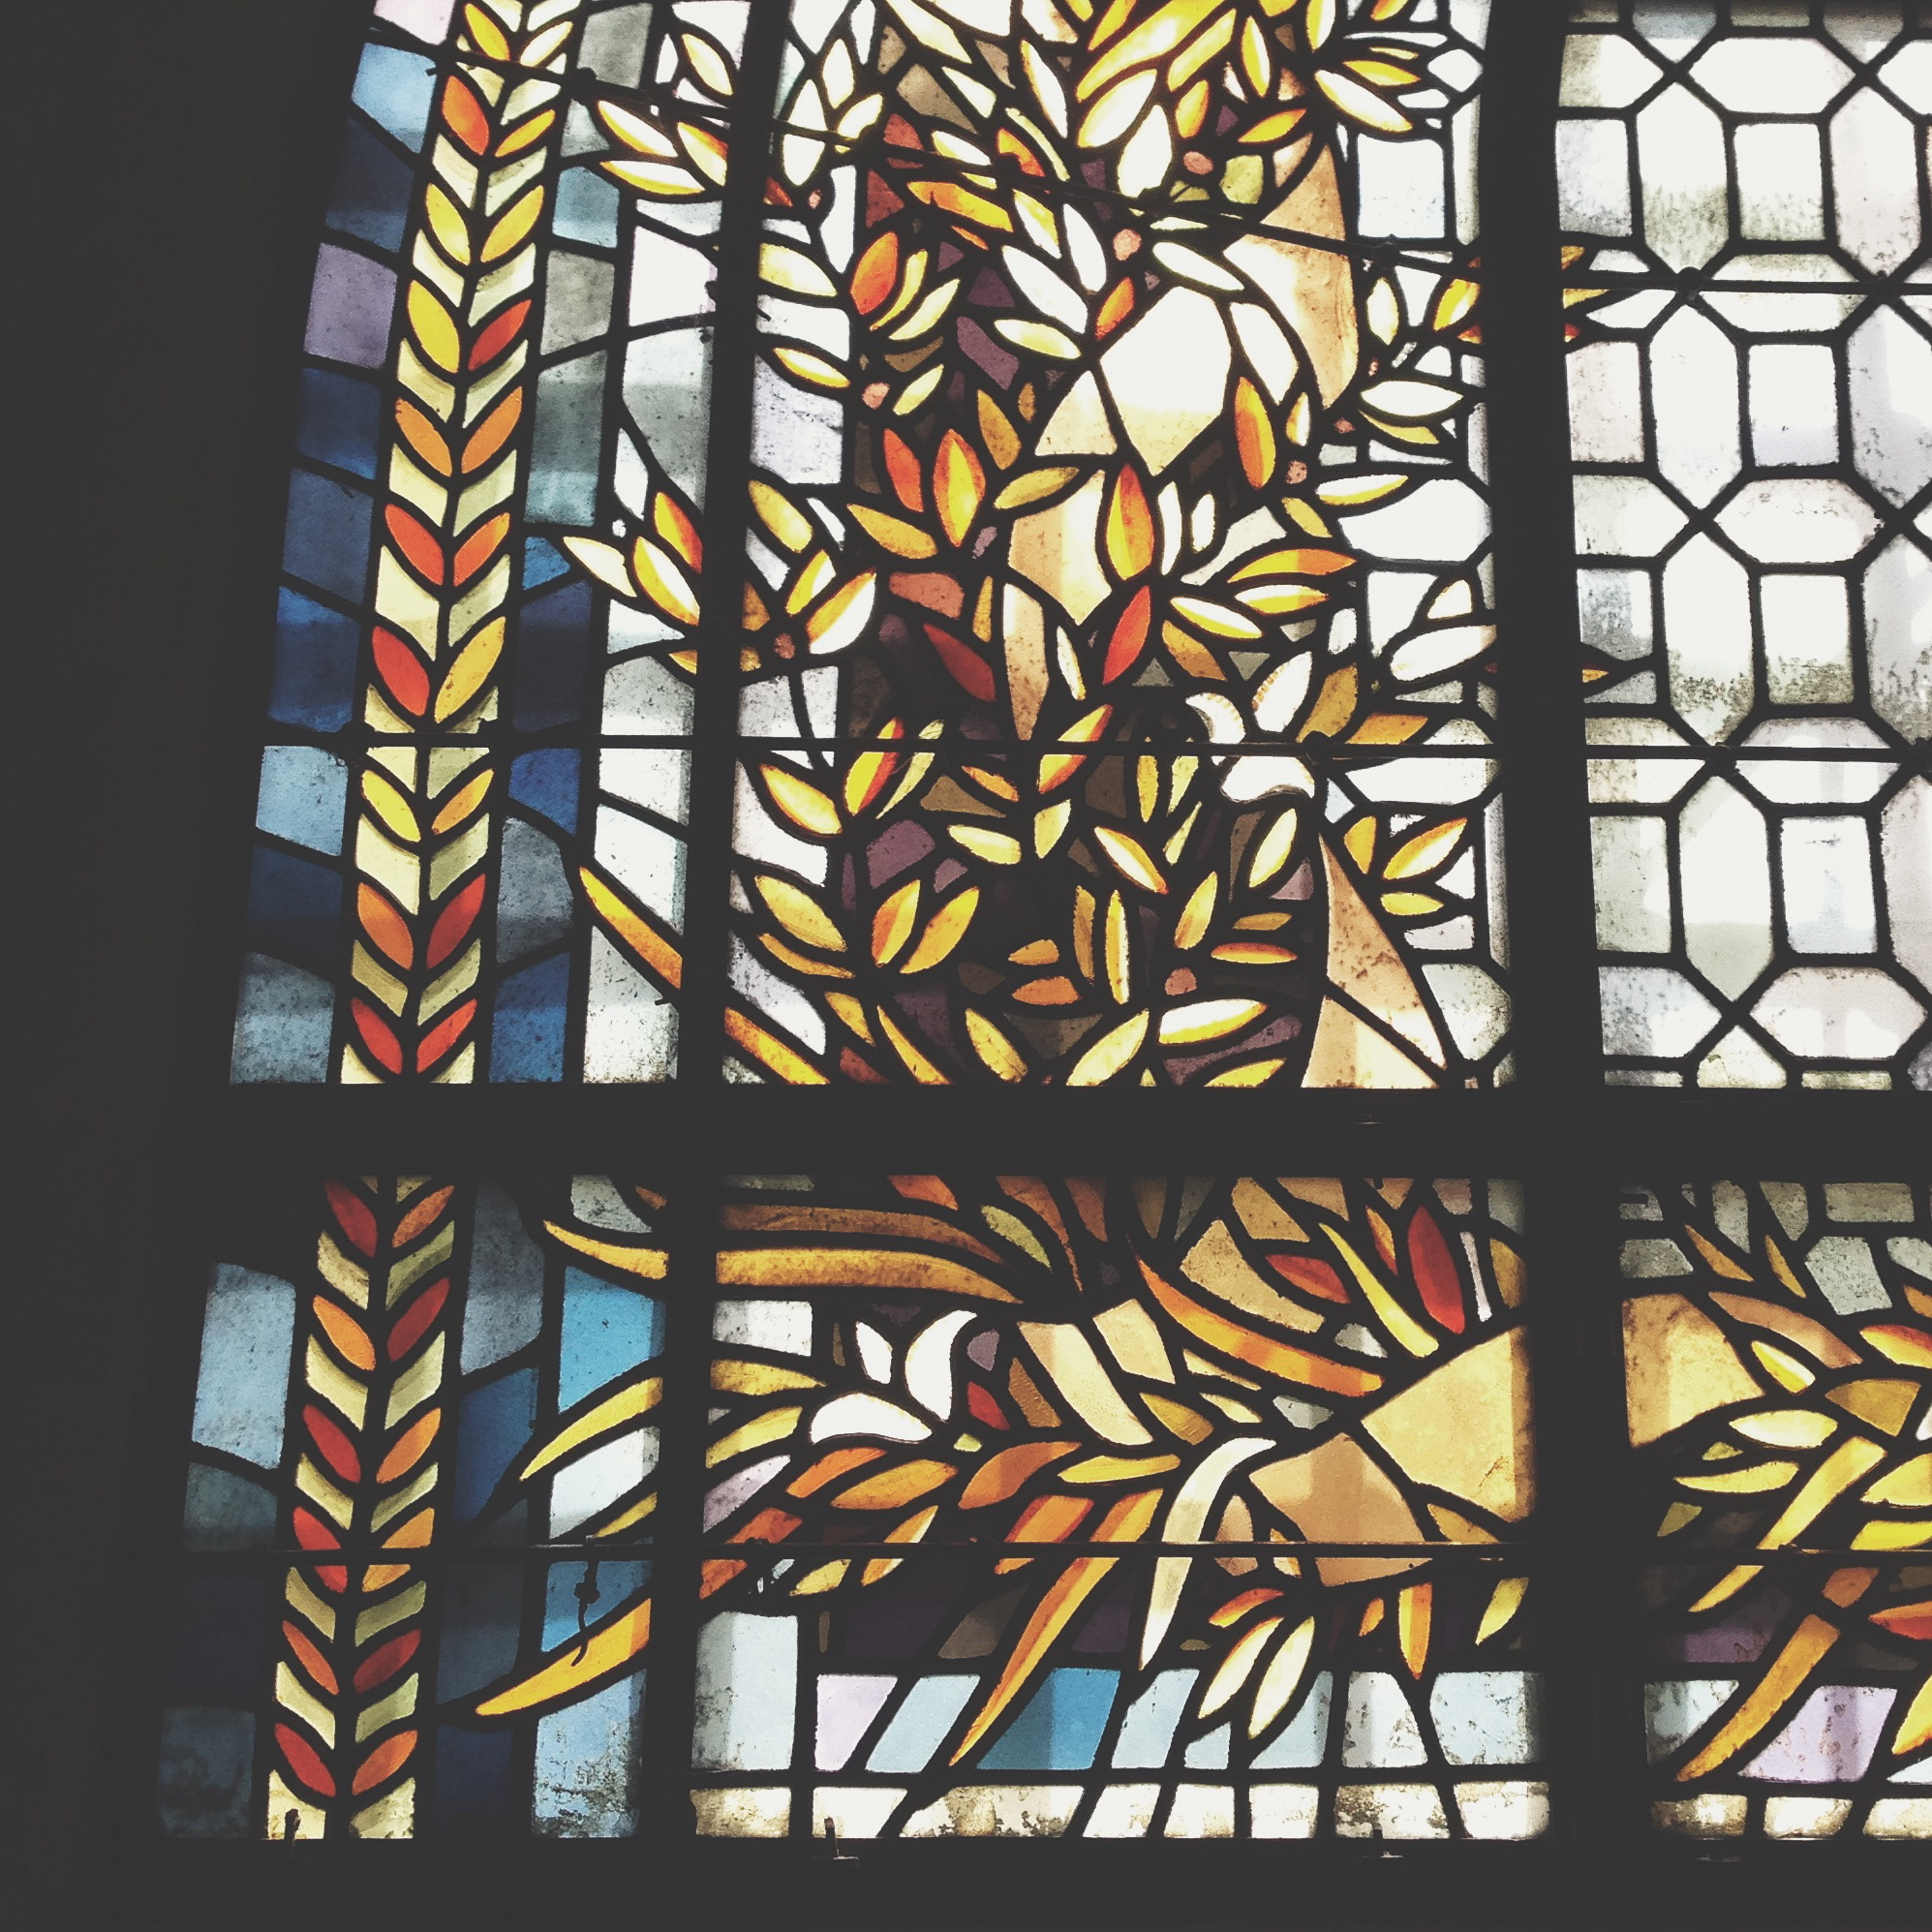 Loved this stained glass in the Basilica of Saint Denis